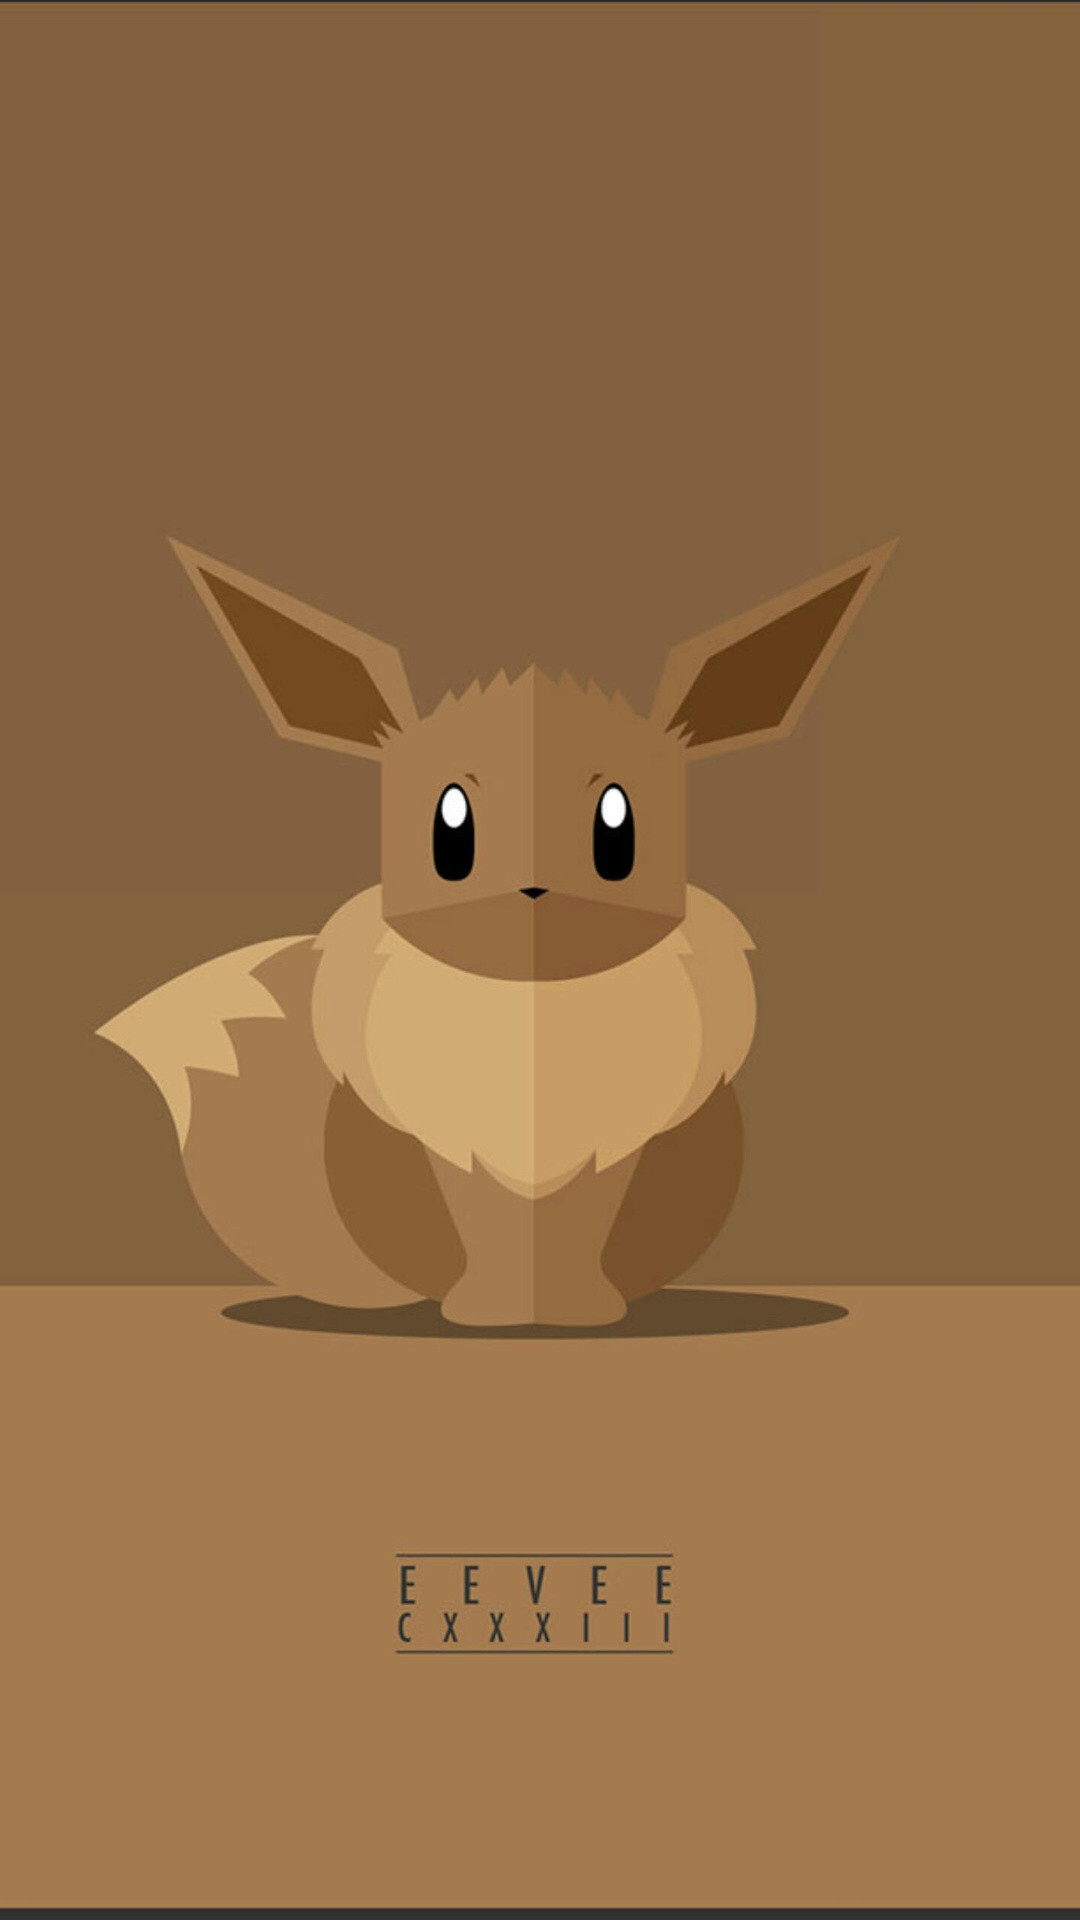 Deviant Art user Weaponix has created a series of minimalistic posters  depicting the different evolved forms of Eevee. For the uninitiated,.